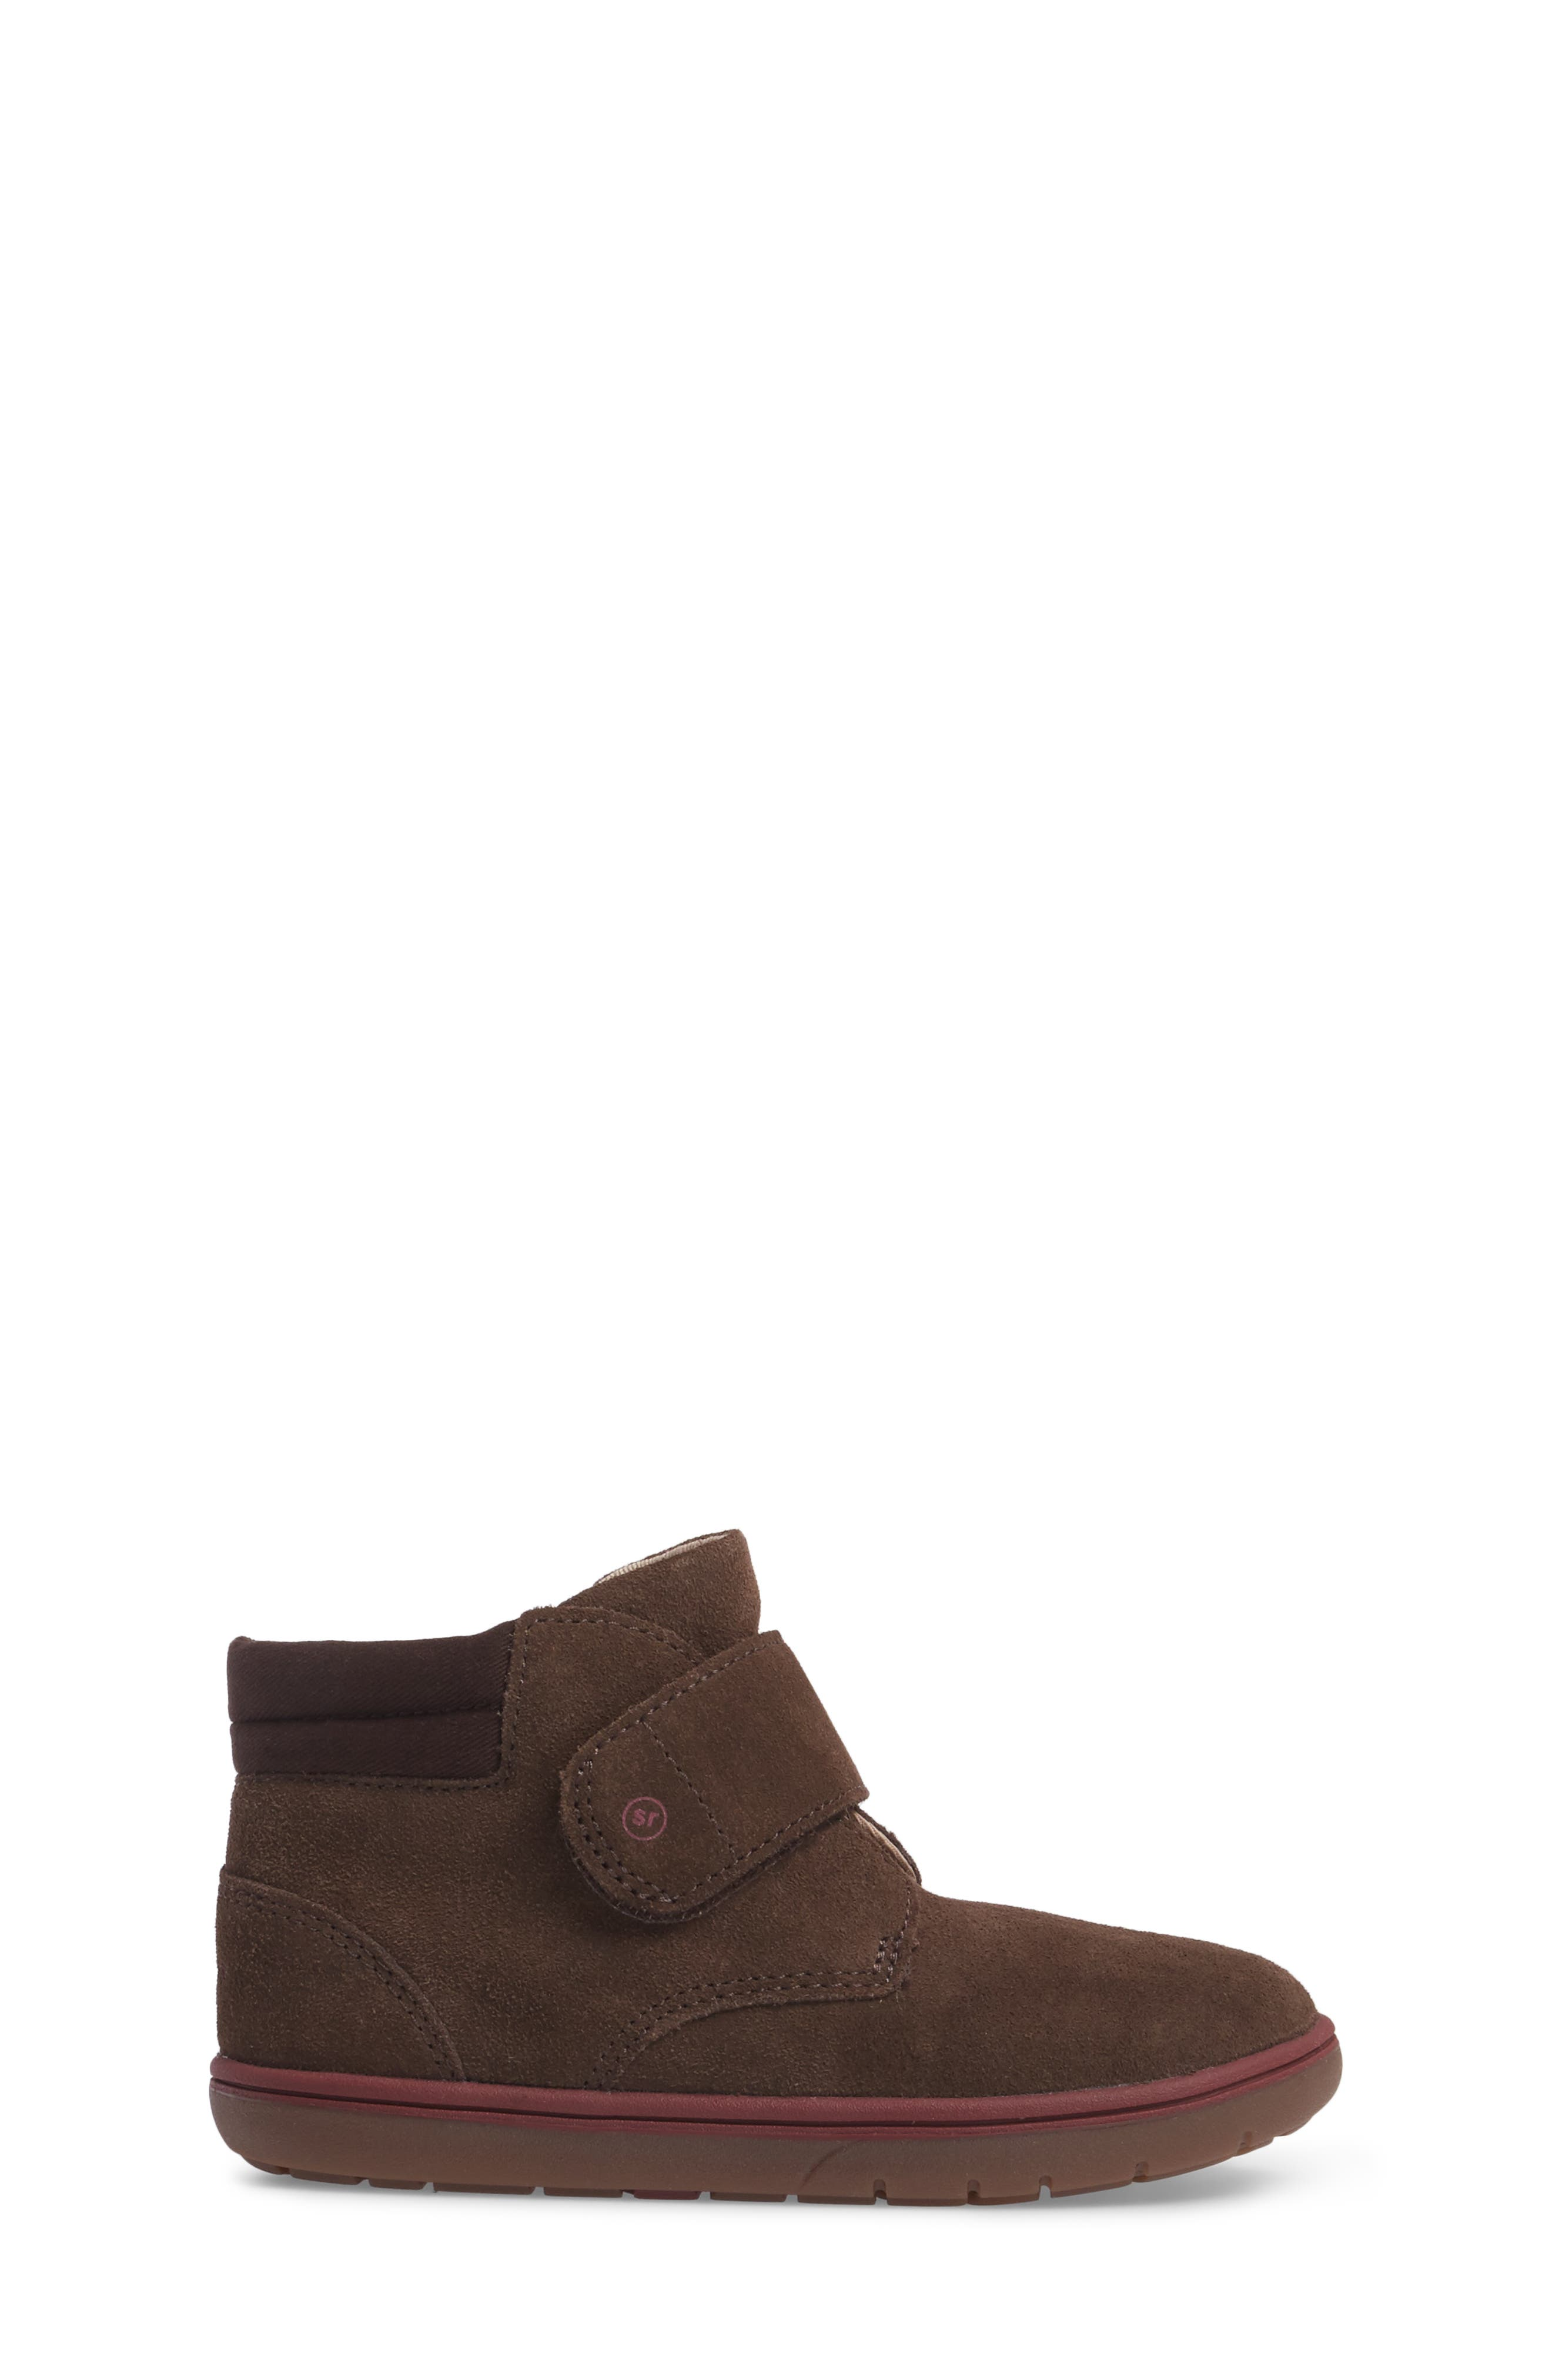 SRtech<sup>™</sup> Lincoln Bootie,                             Alternate thumbnail 3, color,                             BROWN SUEDE